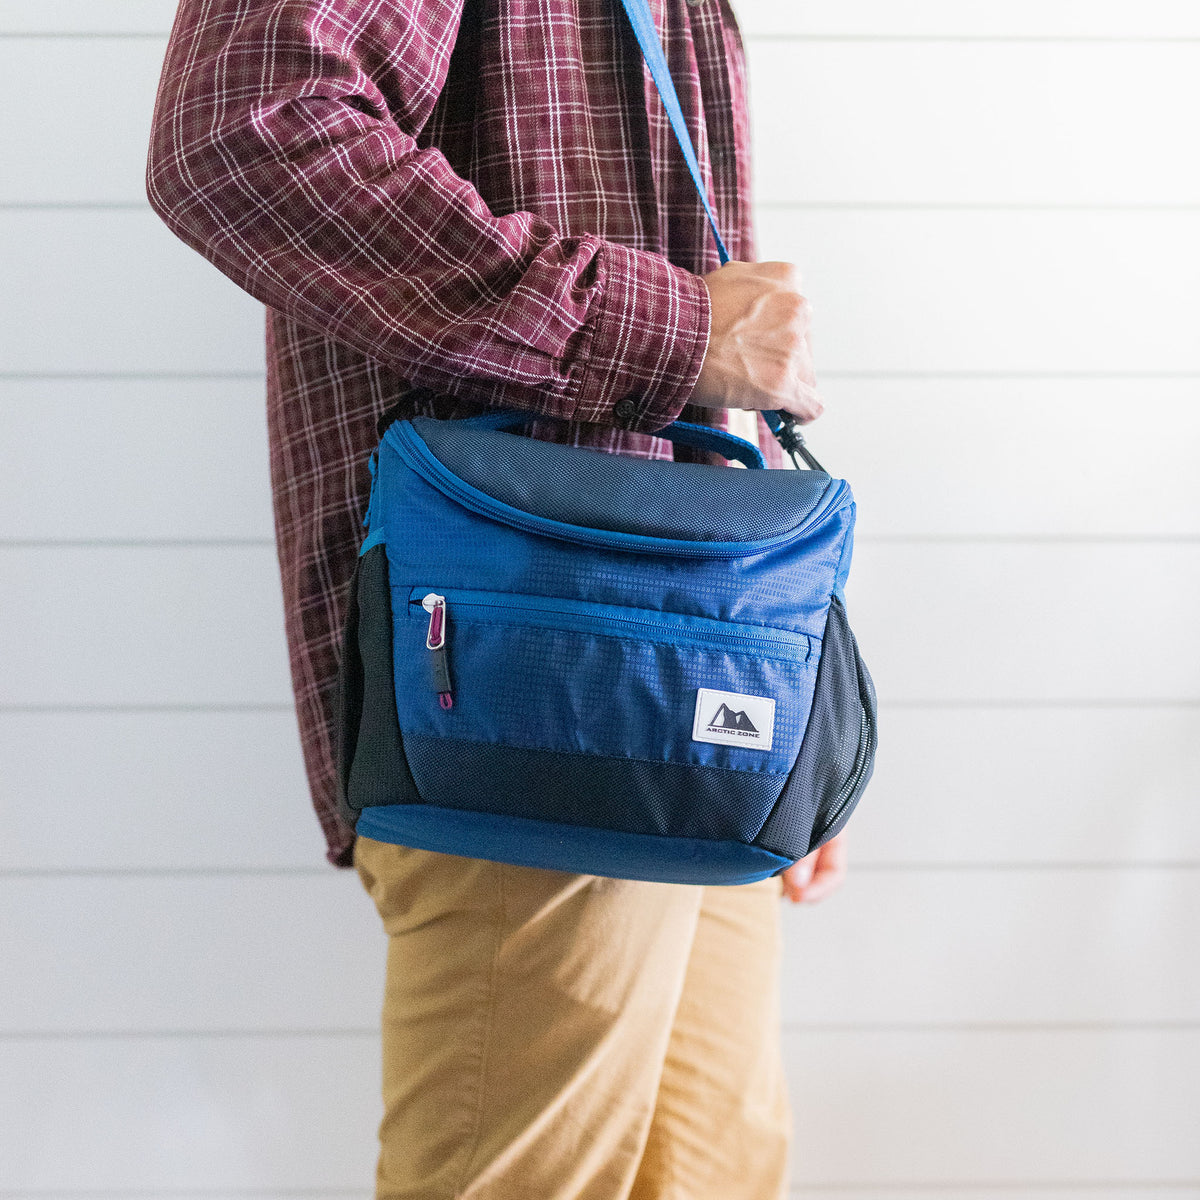 High Performance Meal Prep Day Pack - Blue - Lifestyle, walking to work